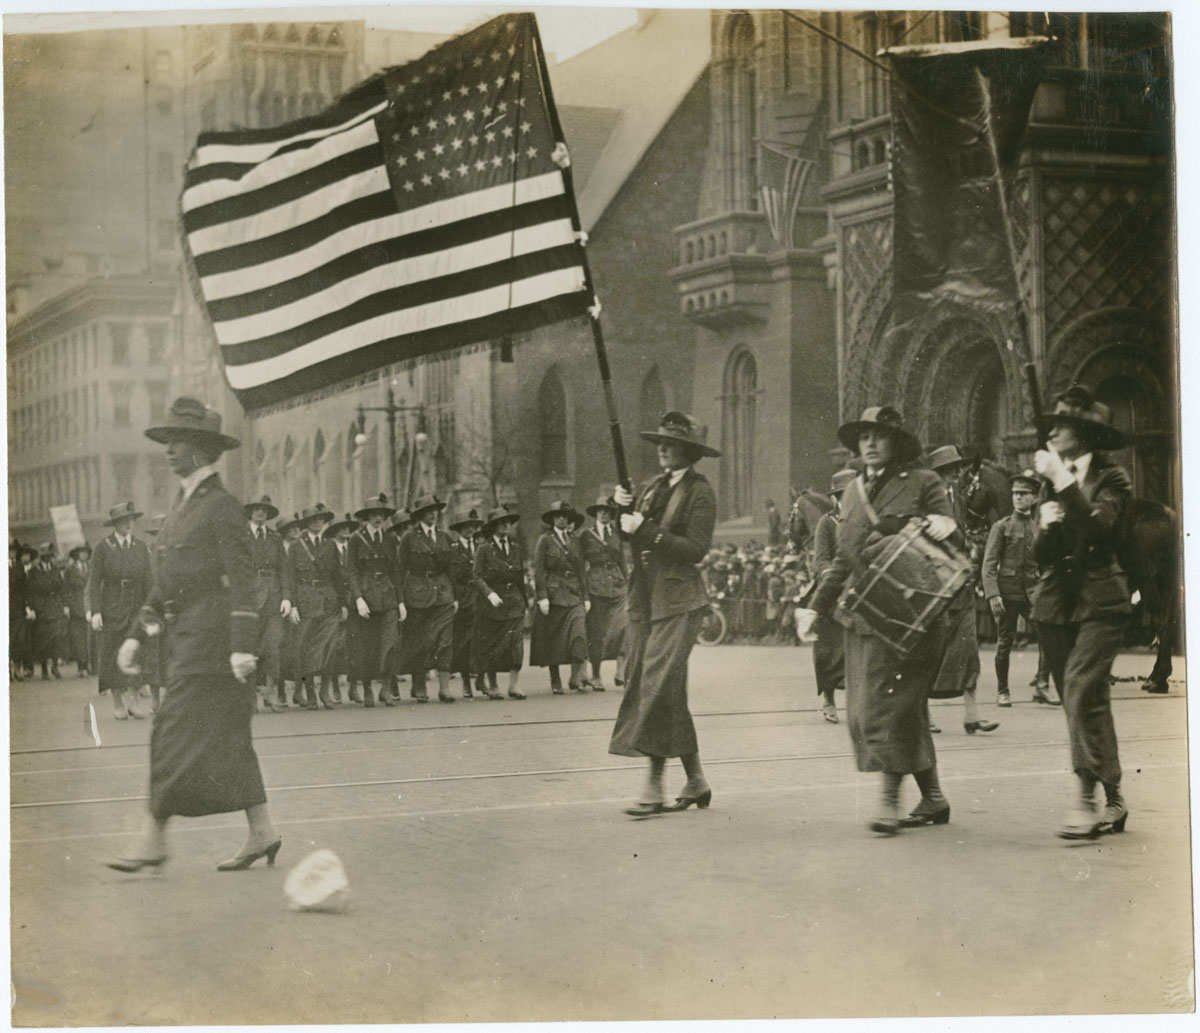 Officers of the Emergency Aid on Parade, ca. 1918. Gelatin silver photograph.